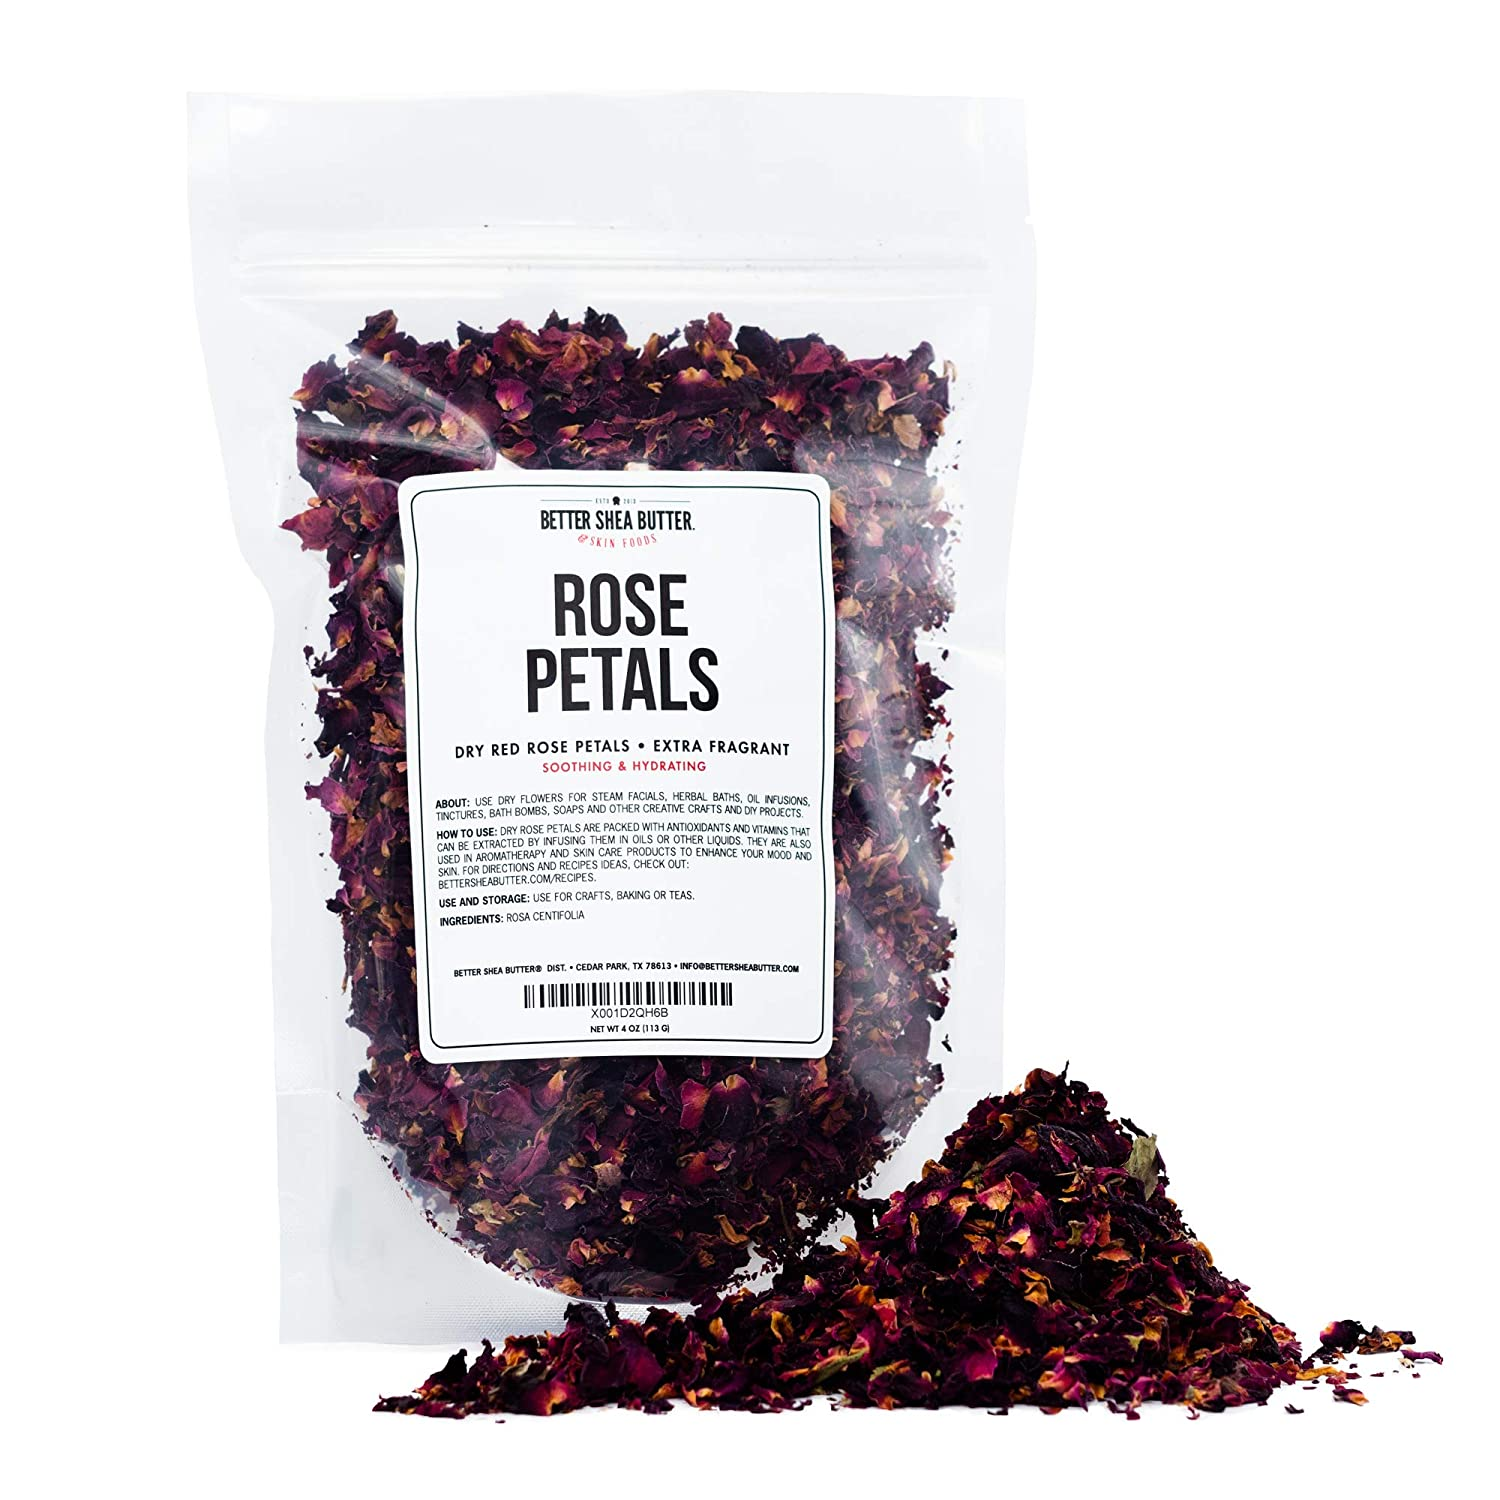 Dry Rose Petals, Red and Fragrant for Tea, Baking, Crafts, Sachets, Baths, Aromatherapy, Oil Infusions, Tinctures - 4oz in Resealable, Recyclable Pouch - by Better Shea Butter